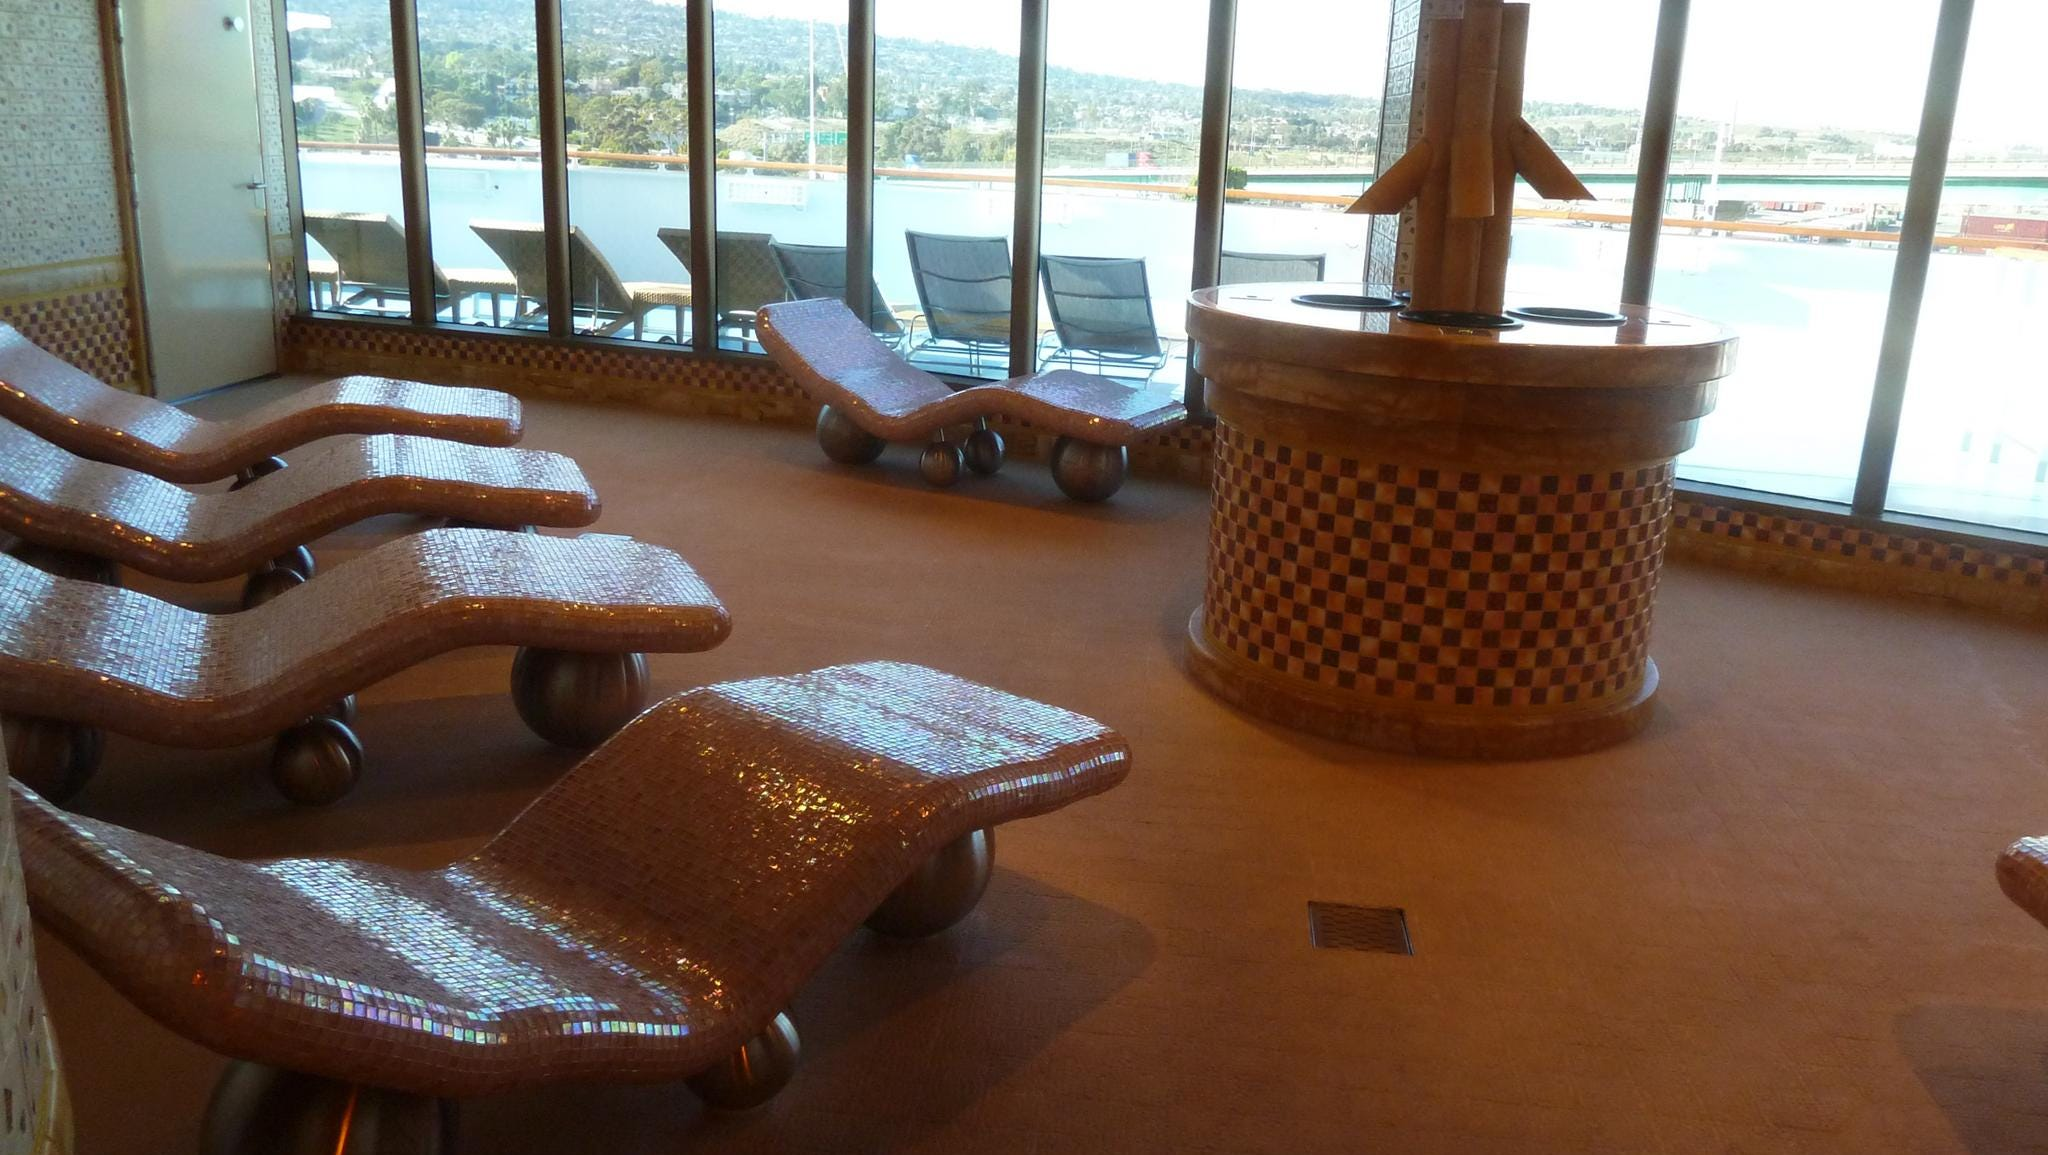 The Rock Sauna fronts the thermal suite on the Orchidea Deck level of the Samsara Spa.